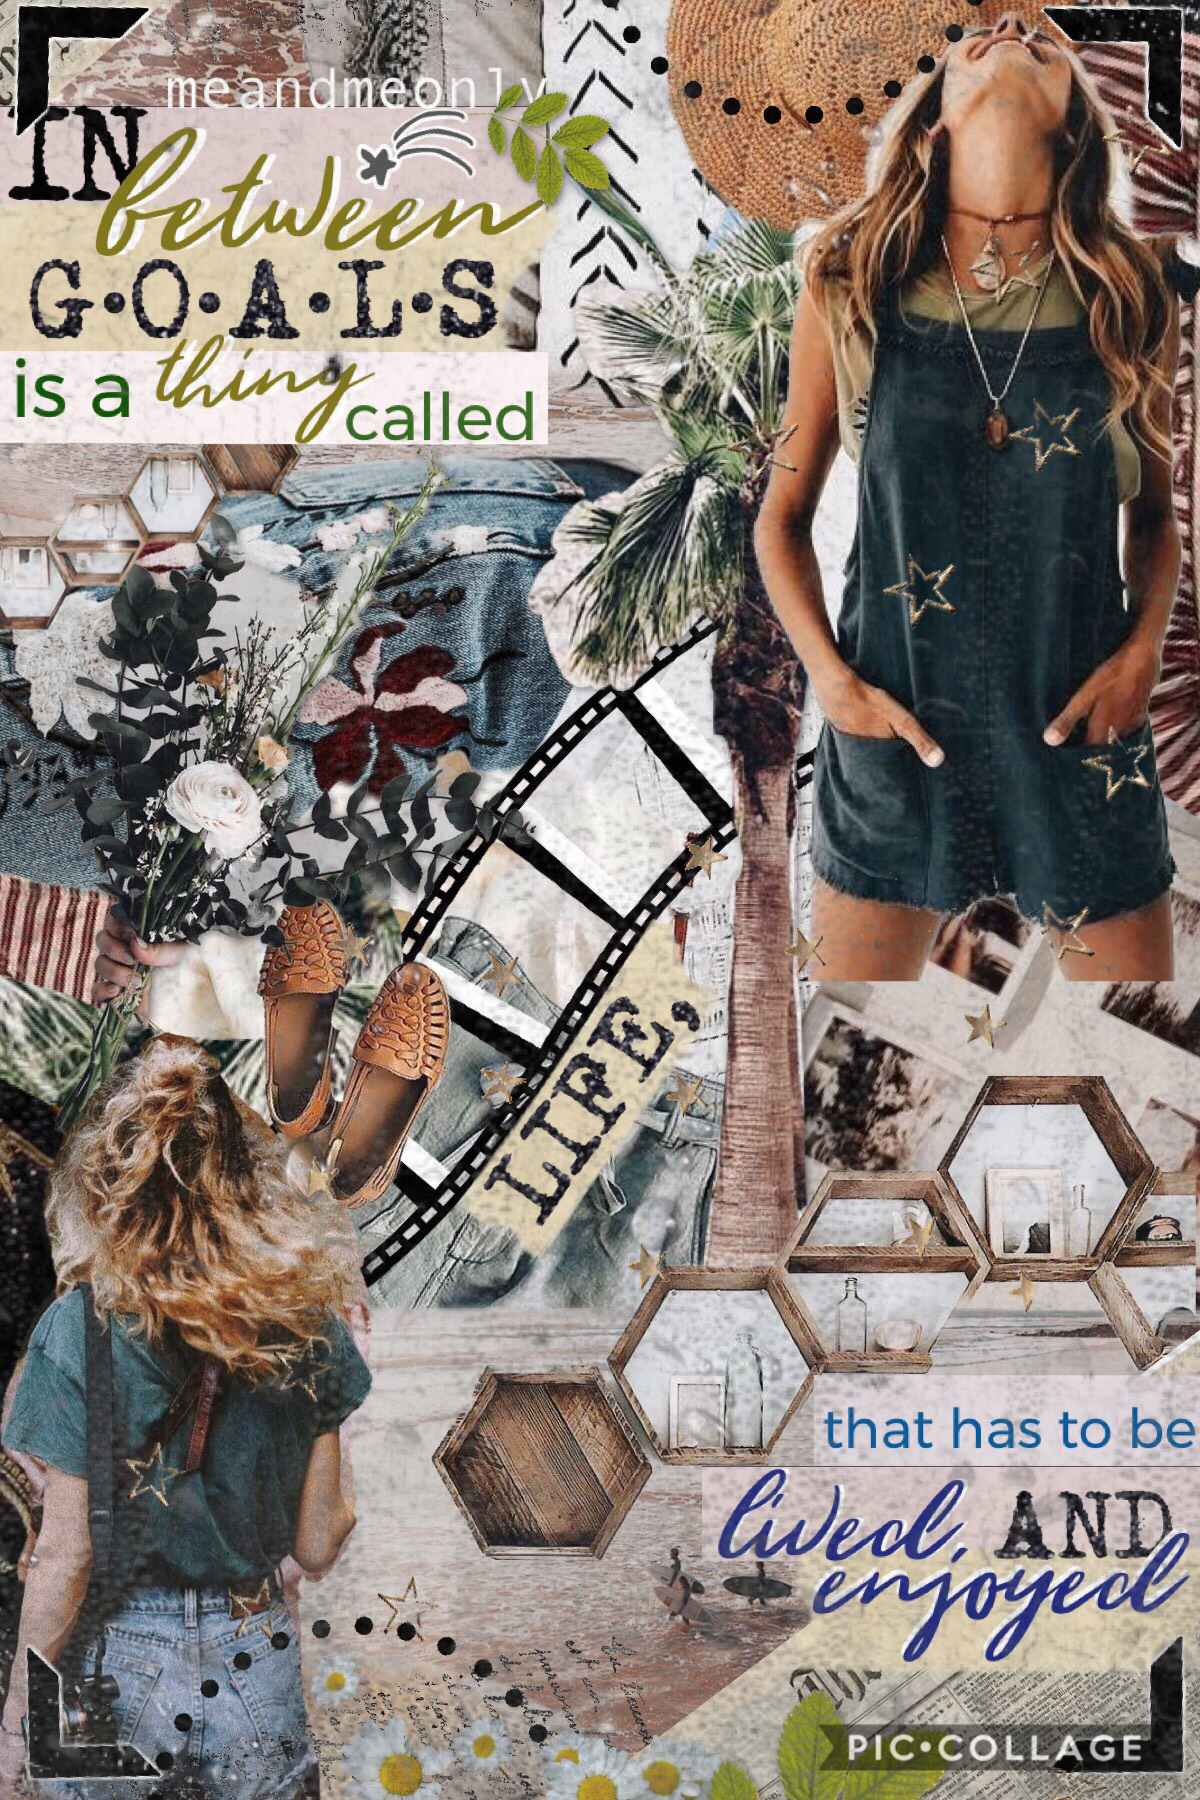 whoop! managed to make this collage without the tools pc got rid off in their new update :( how is everyone's day? 🌿🌸 kinda still figuring out my style✨💫 QOTD: when do you put up your Christmas tree? AOTD: normally 1st of December🎄🎅